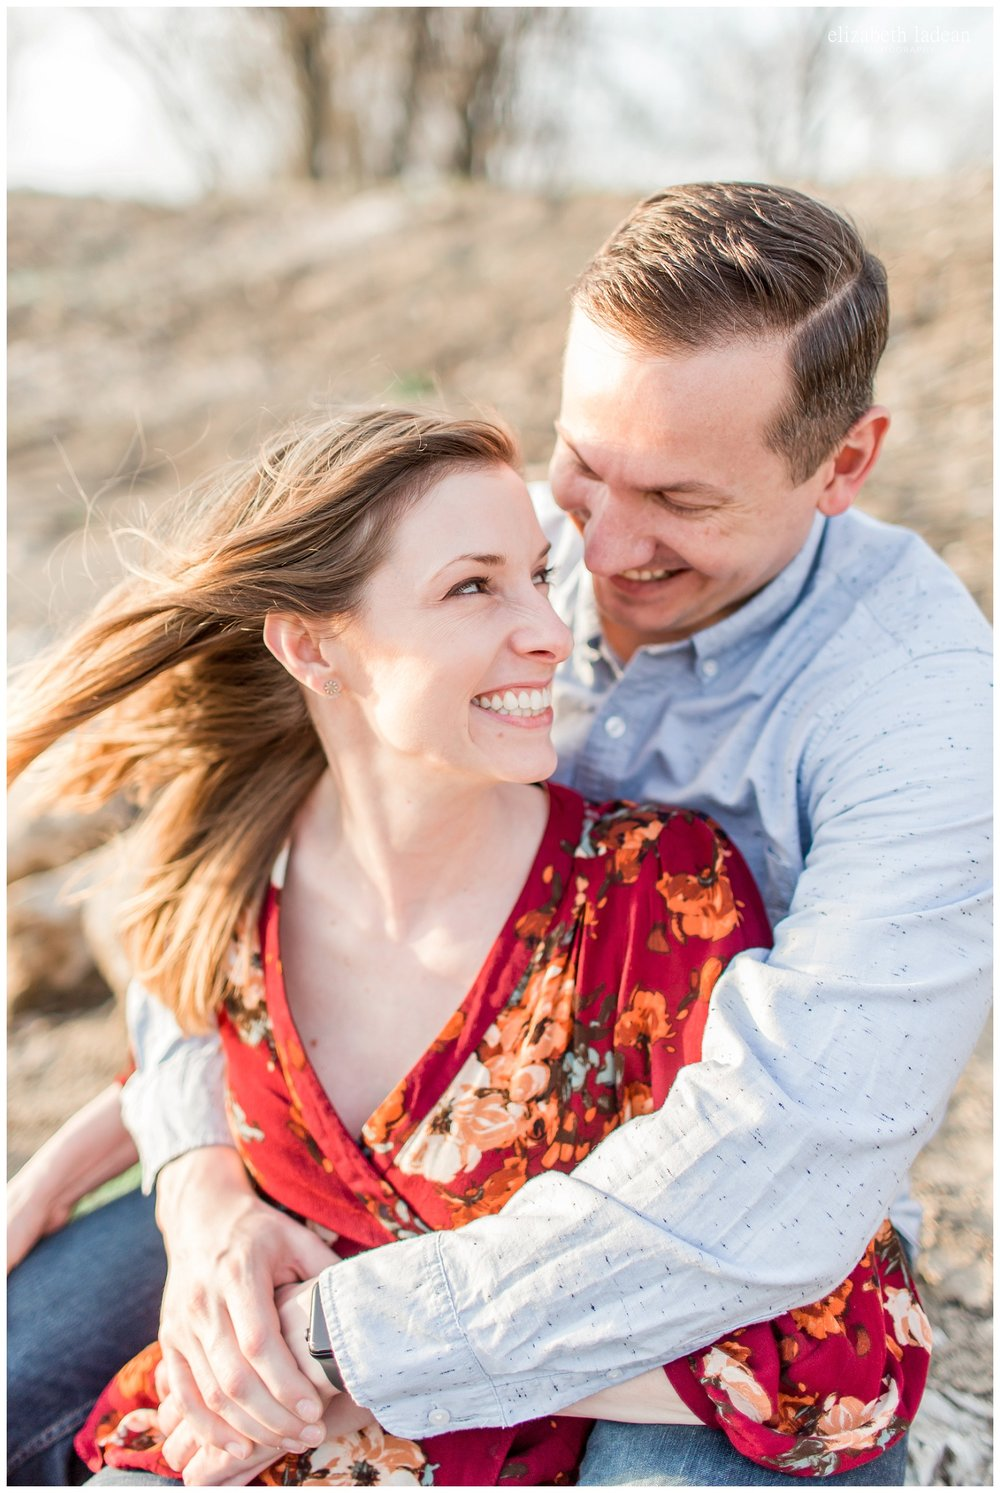 Parkville-Engagement-Photographer-A+J2018-elizabeth-ladean-photography-photo-_6652.jpg